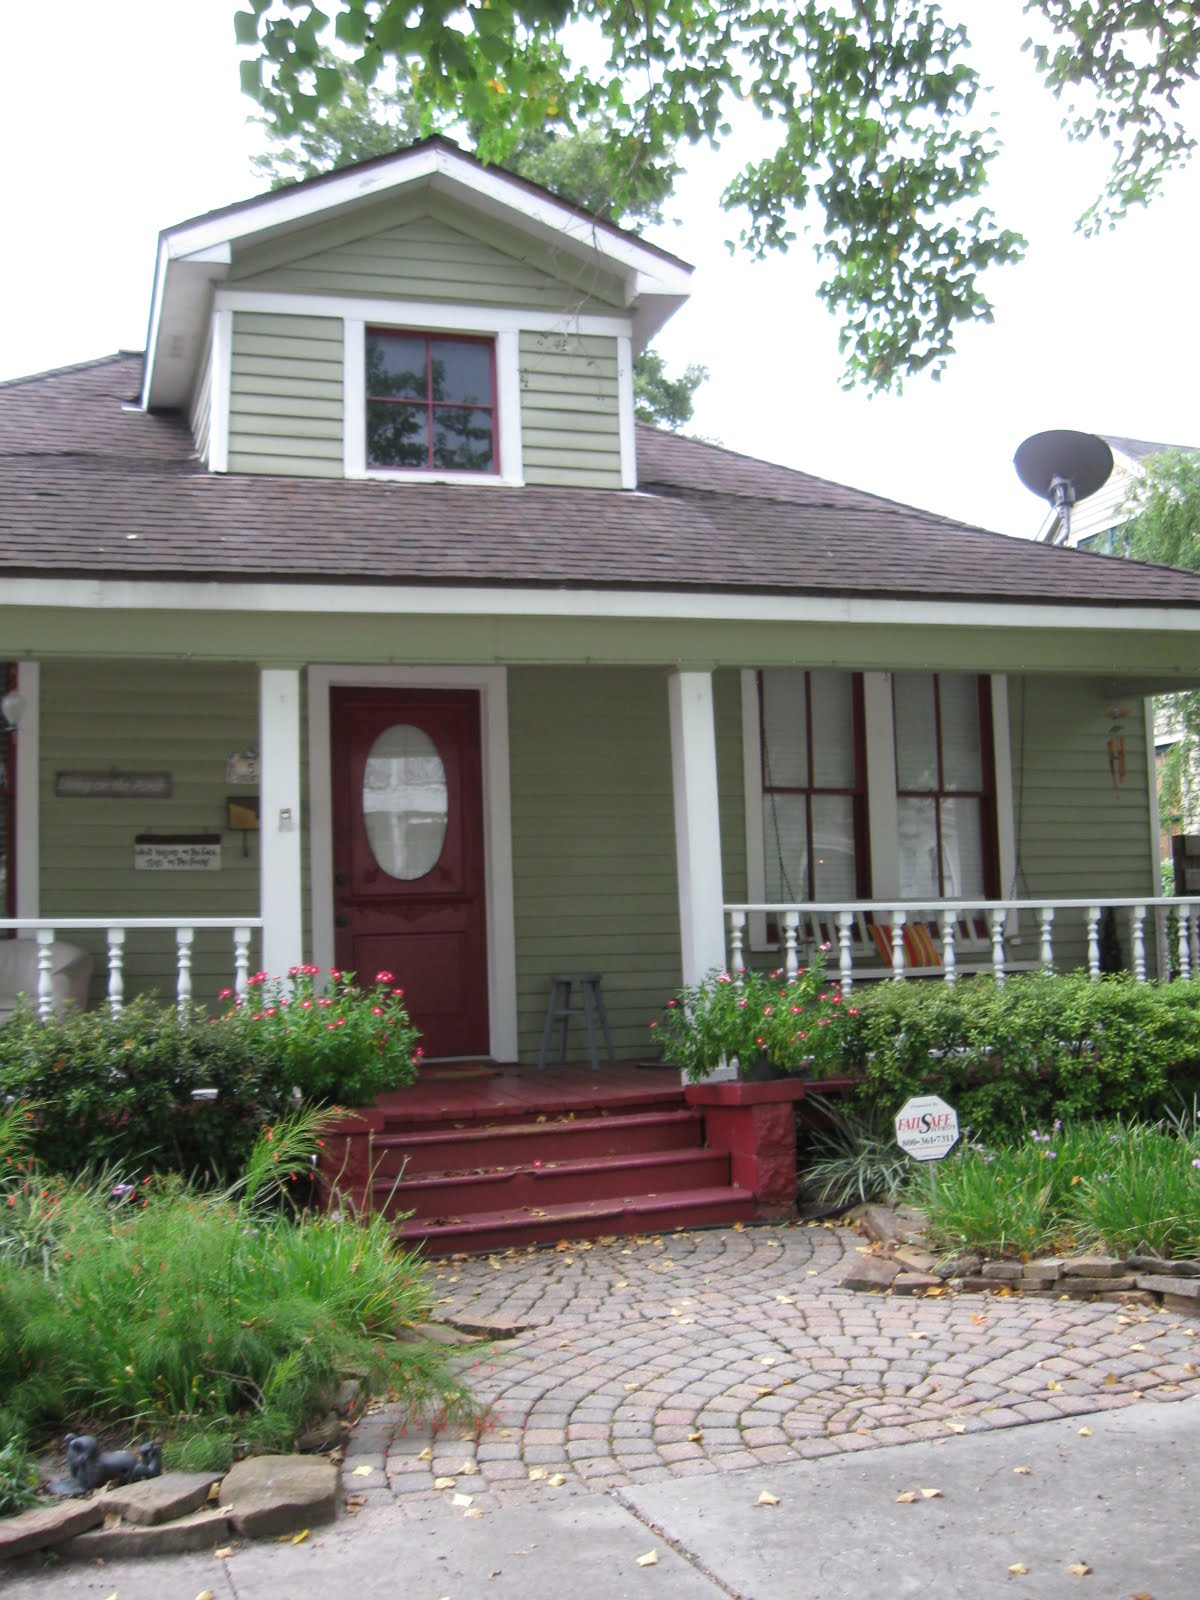 The other houston 1930 front porch bungalow for Front porch designs ideas